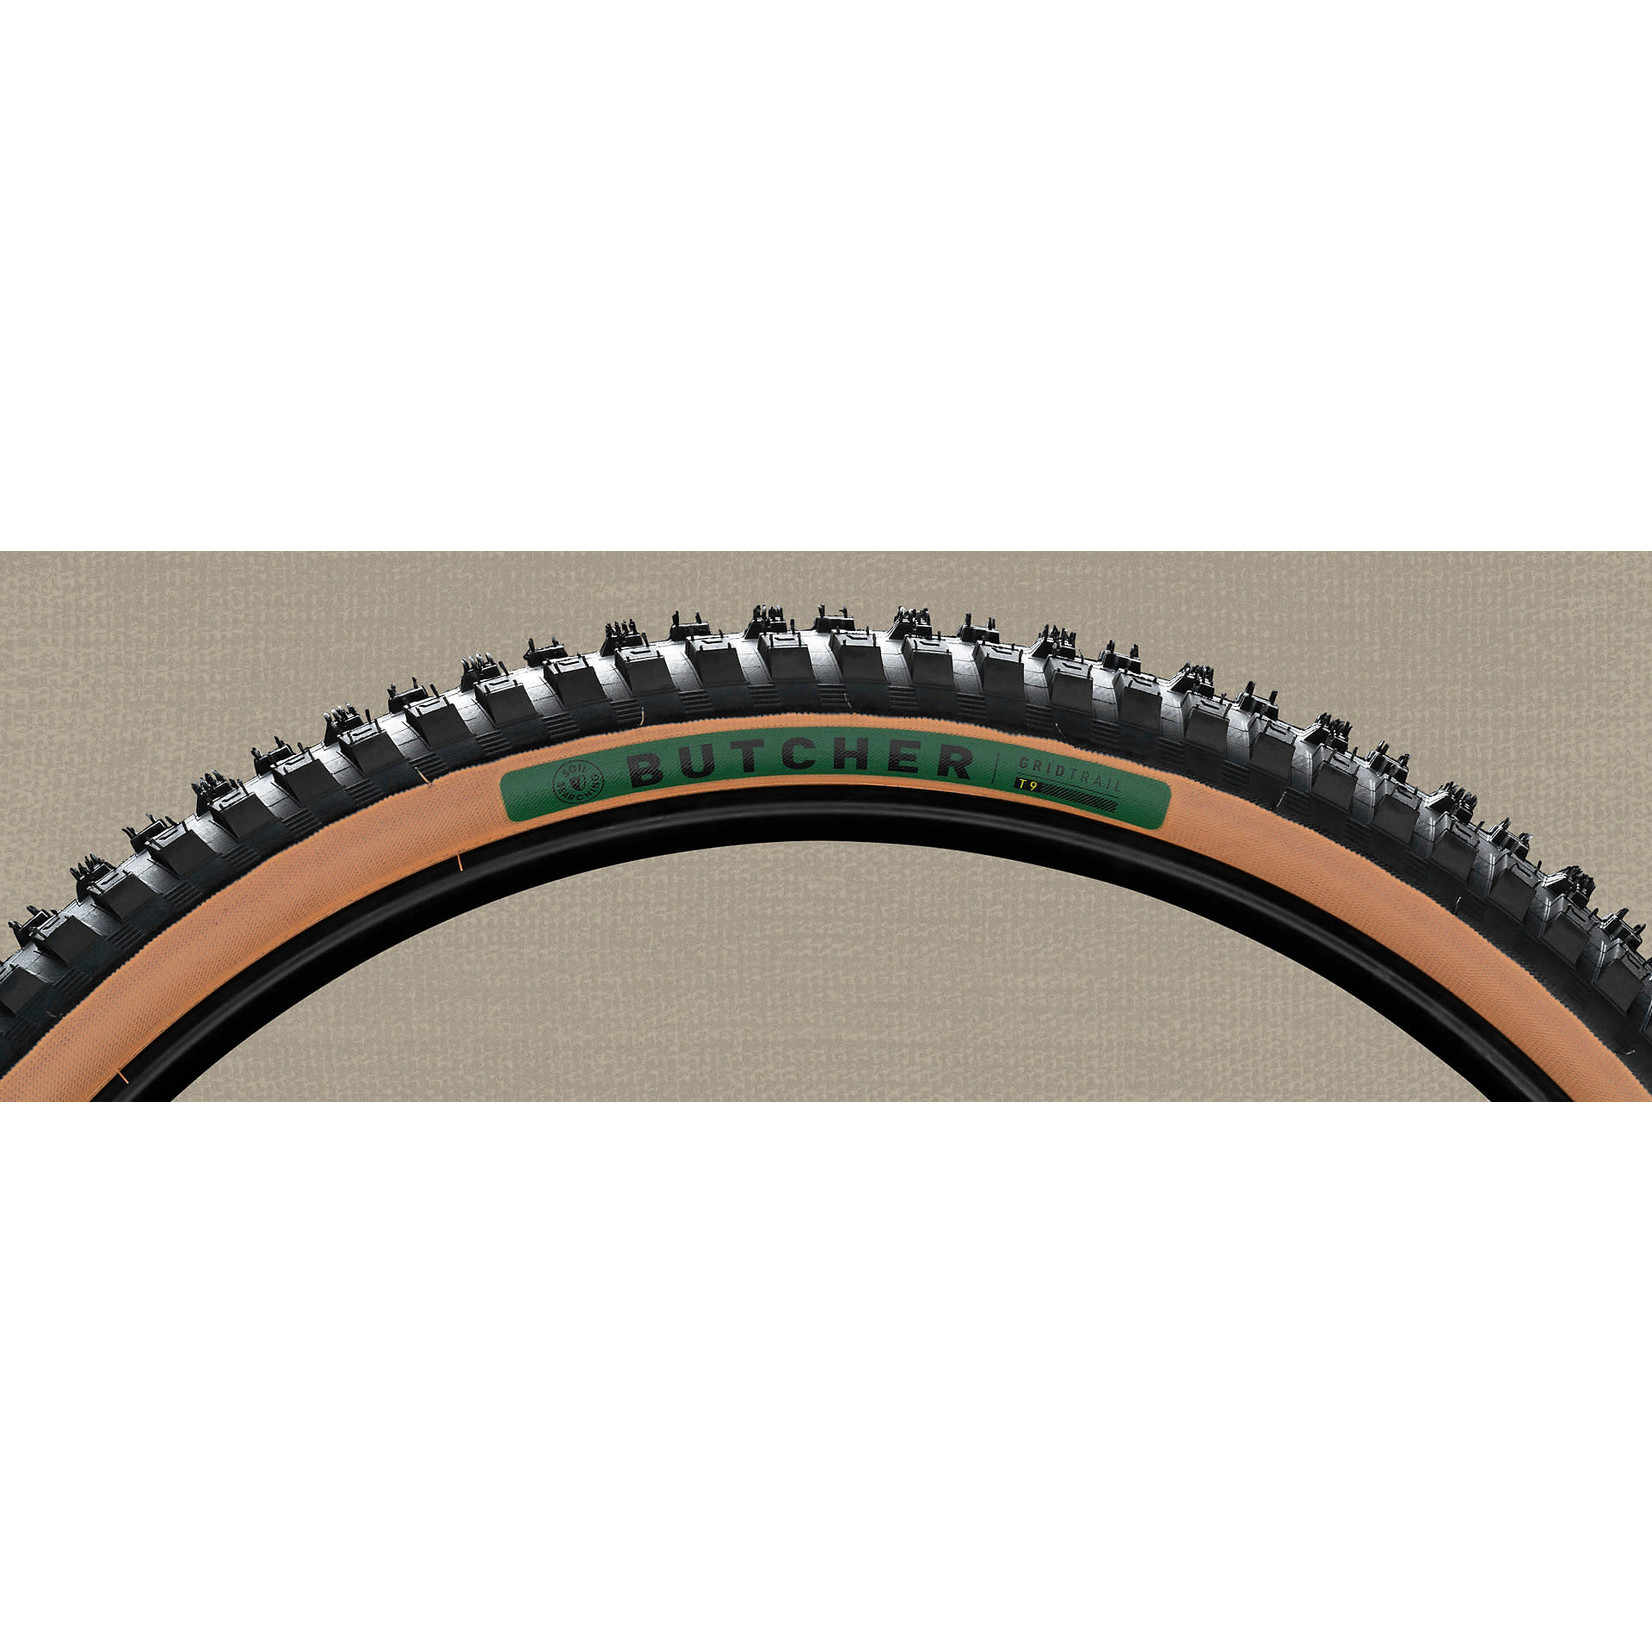 Specialized Specialized Butcher Grid Trail Soil Searching T9 Tire